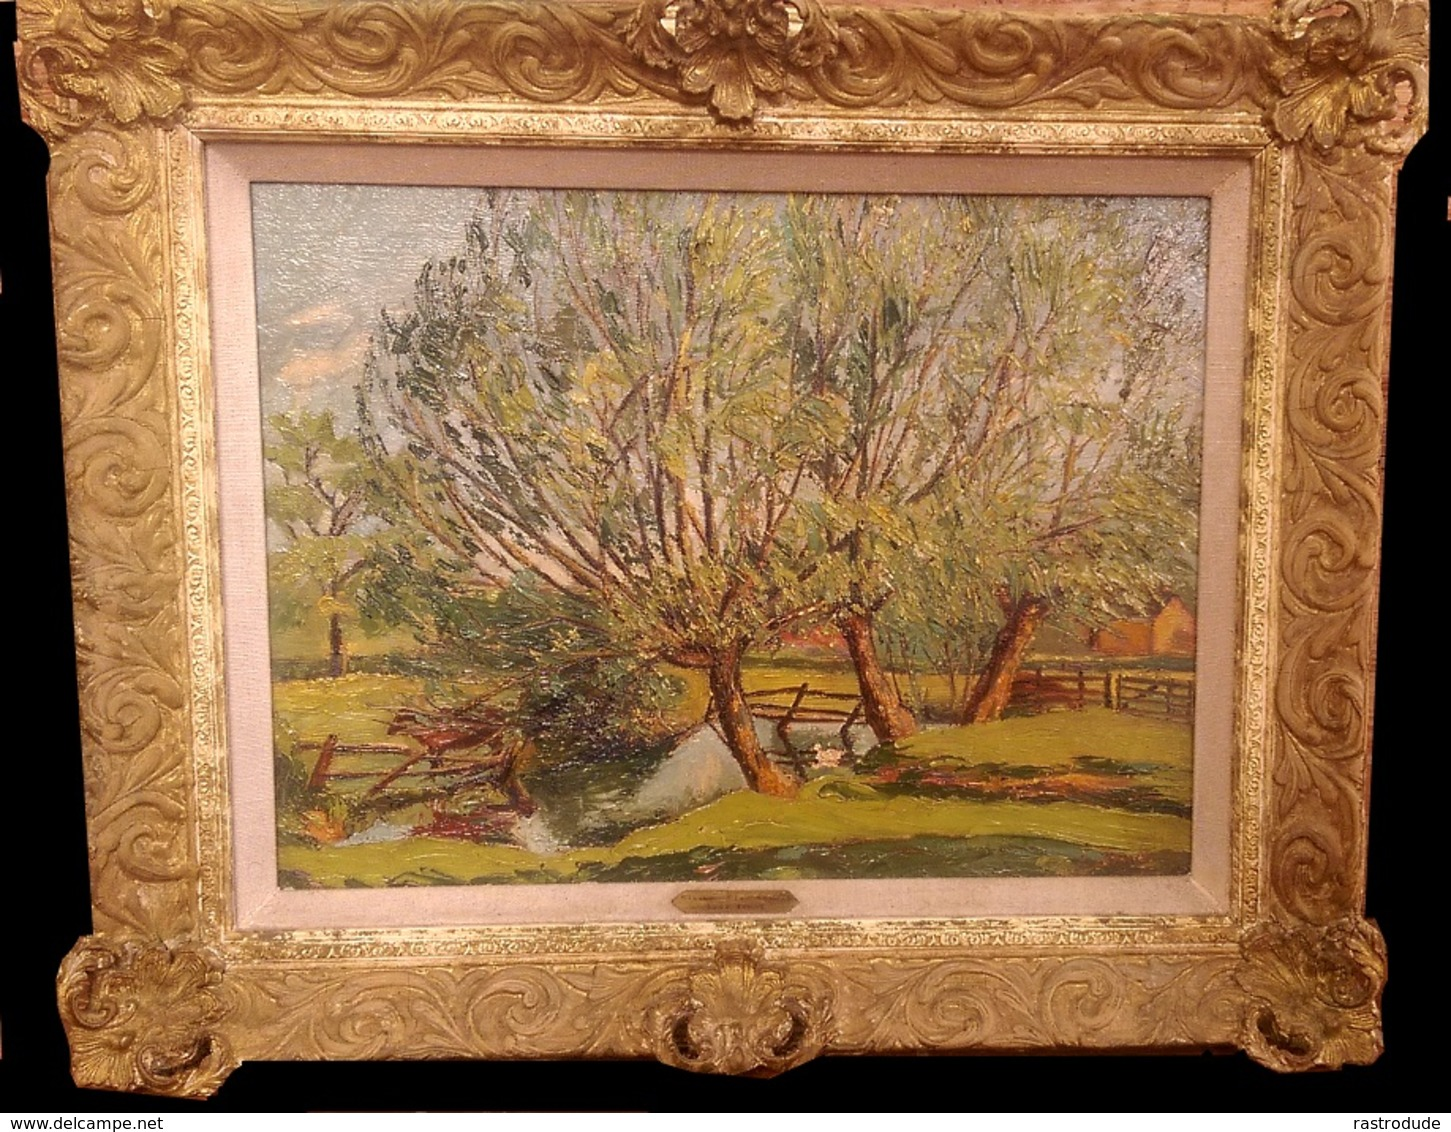 LUCY YOUNG - OIL ON FRENCH PANEL - Ca. 1920 TITLE: POND WITH WILLOW, KNOWLE - ROYAL INSTITUTE OF OIL PAINTERS, EXHIBITOR - Oils